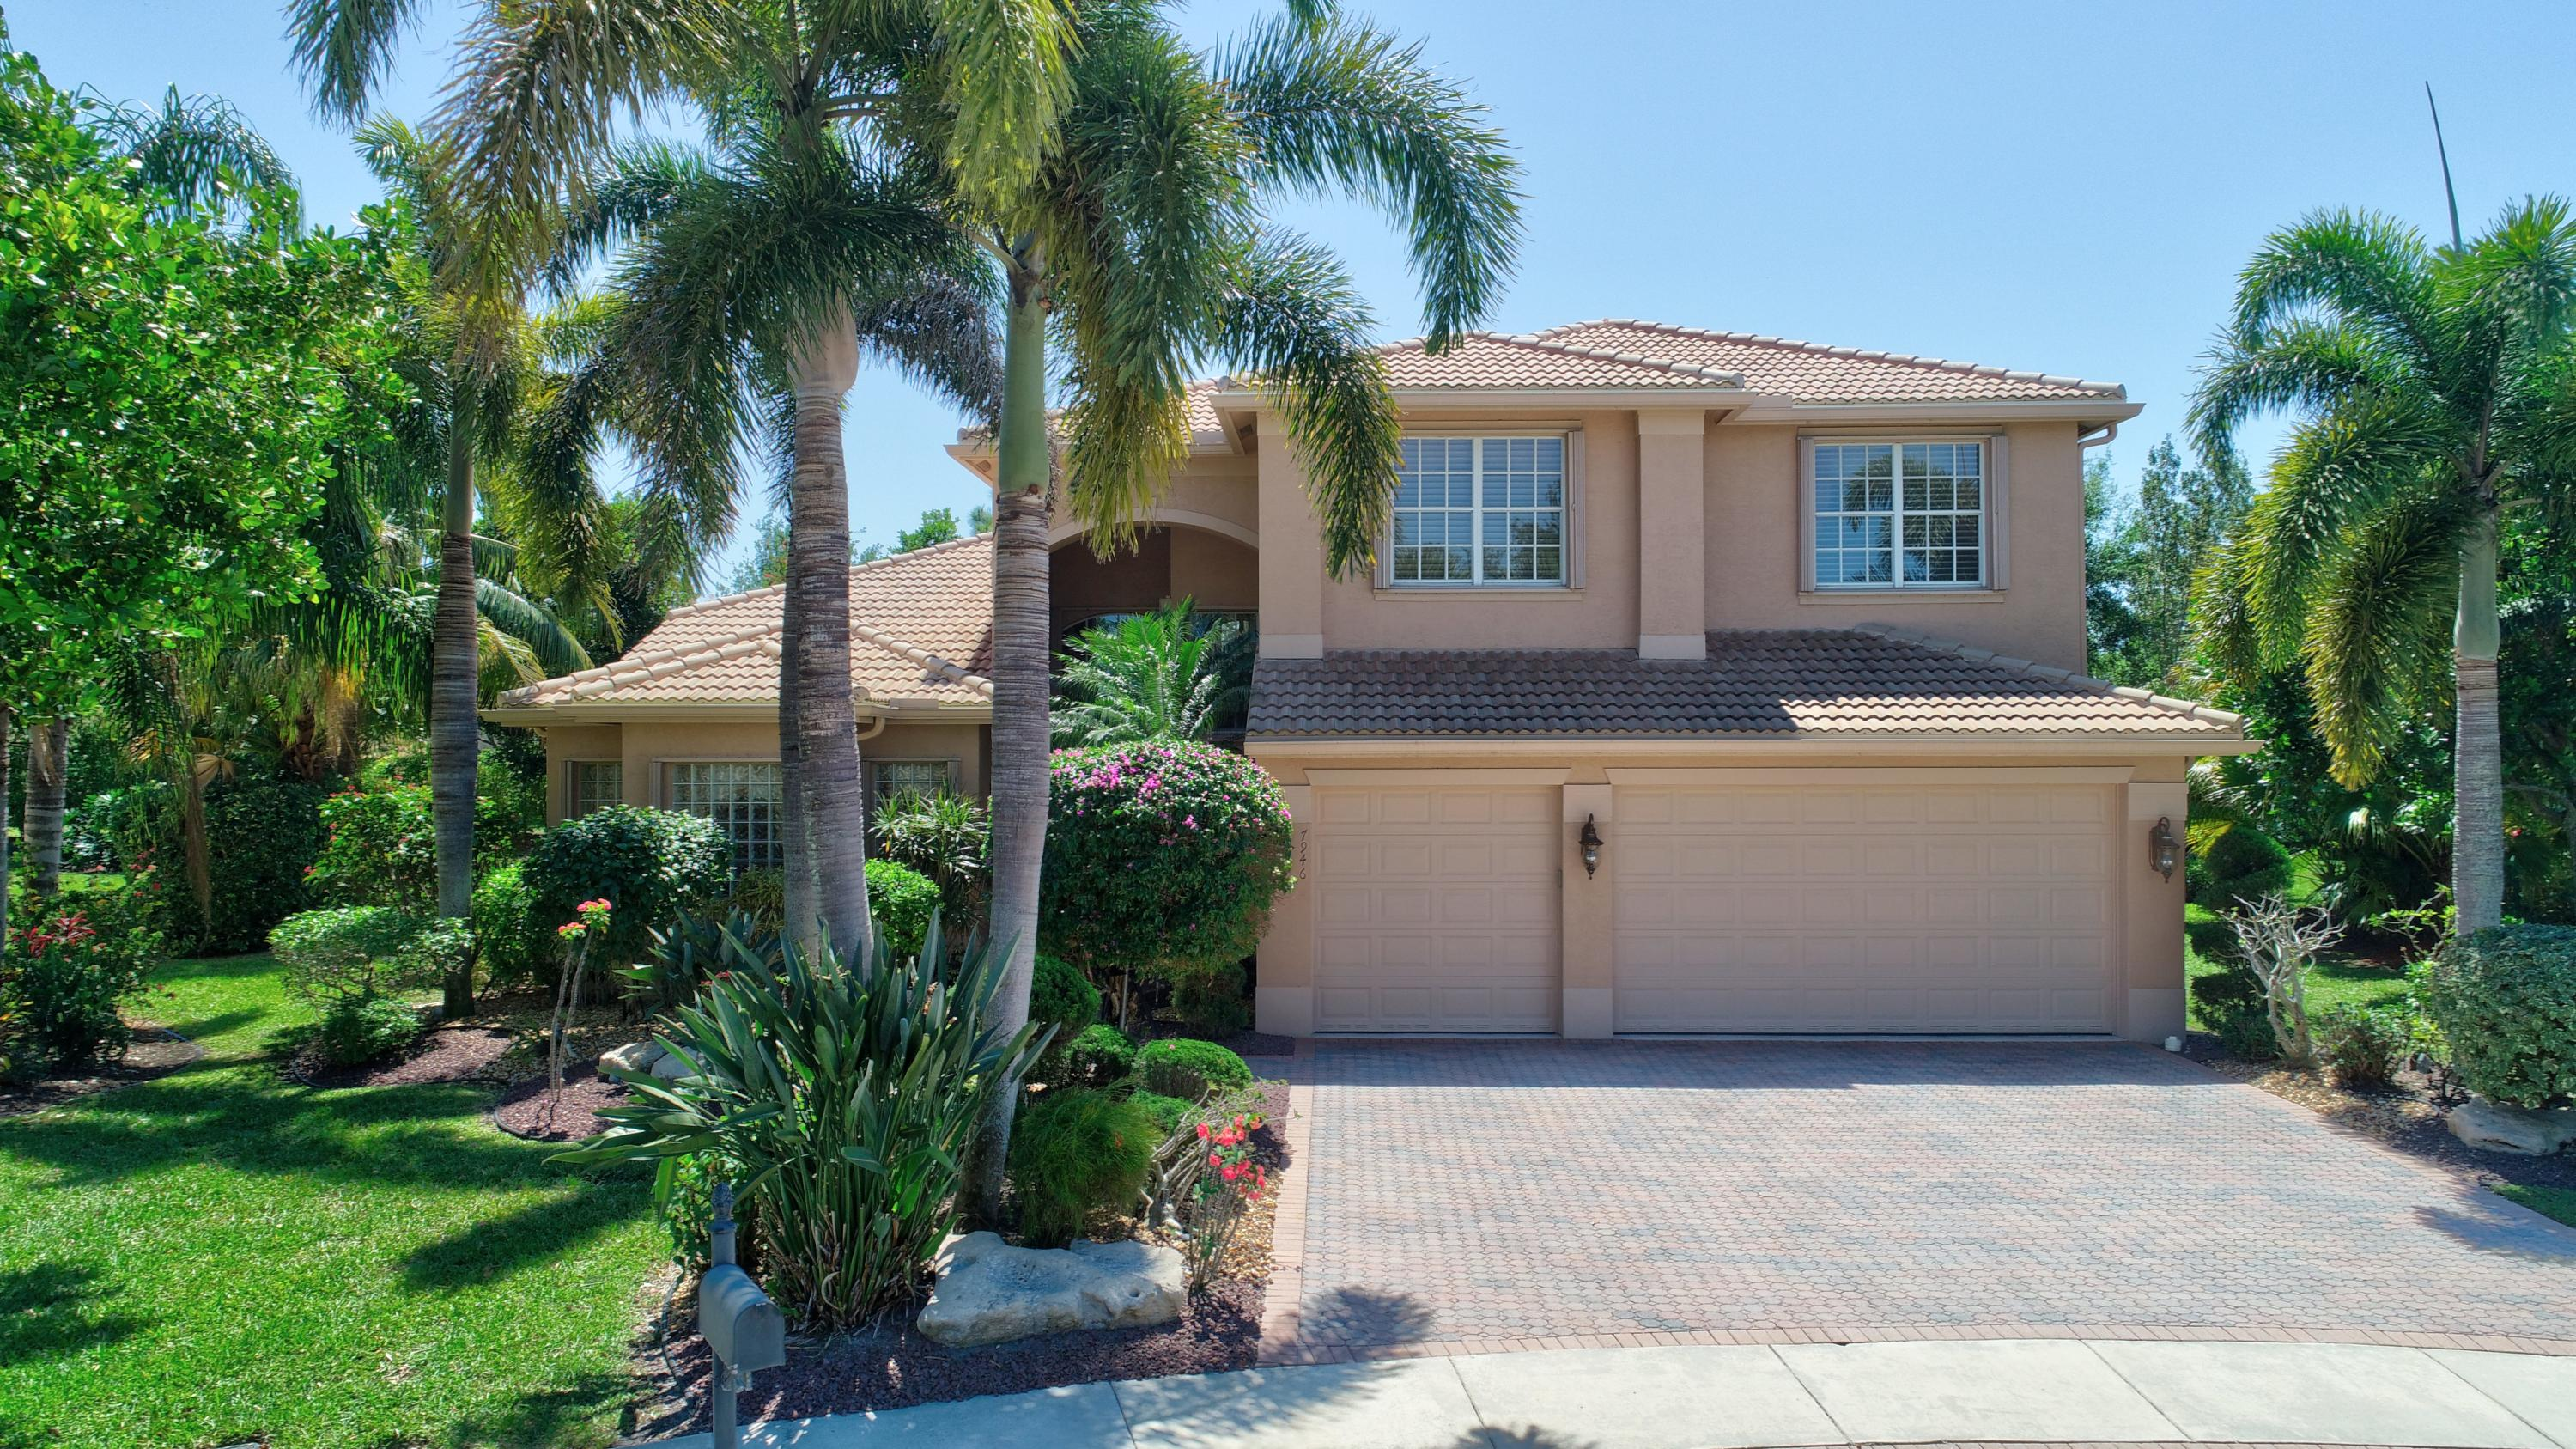 Home for sale in Valencia Shores Lake Worth Florida